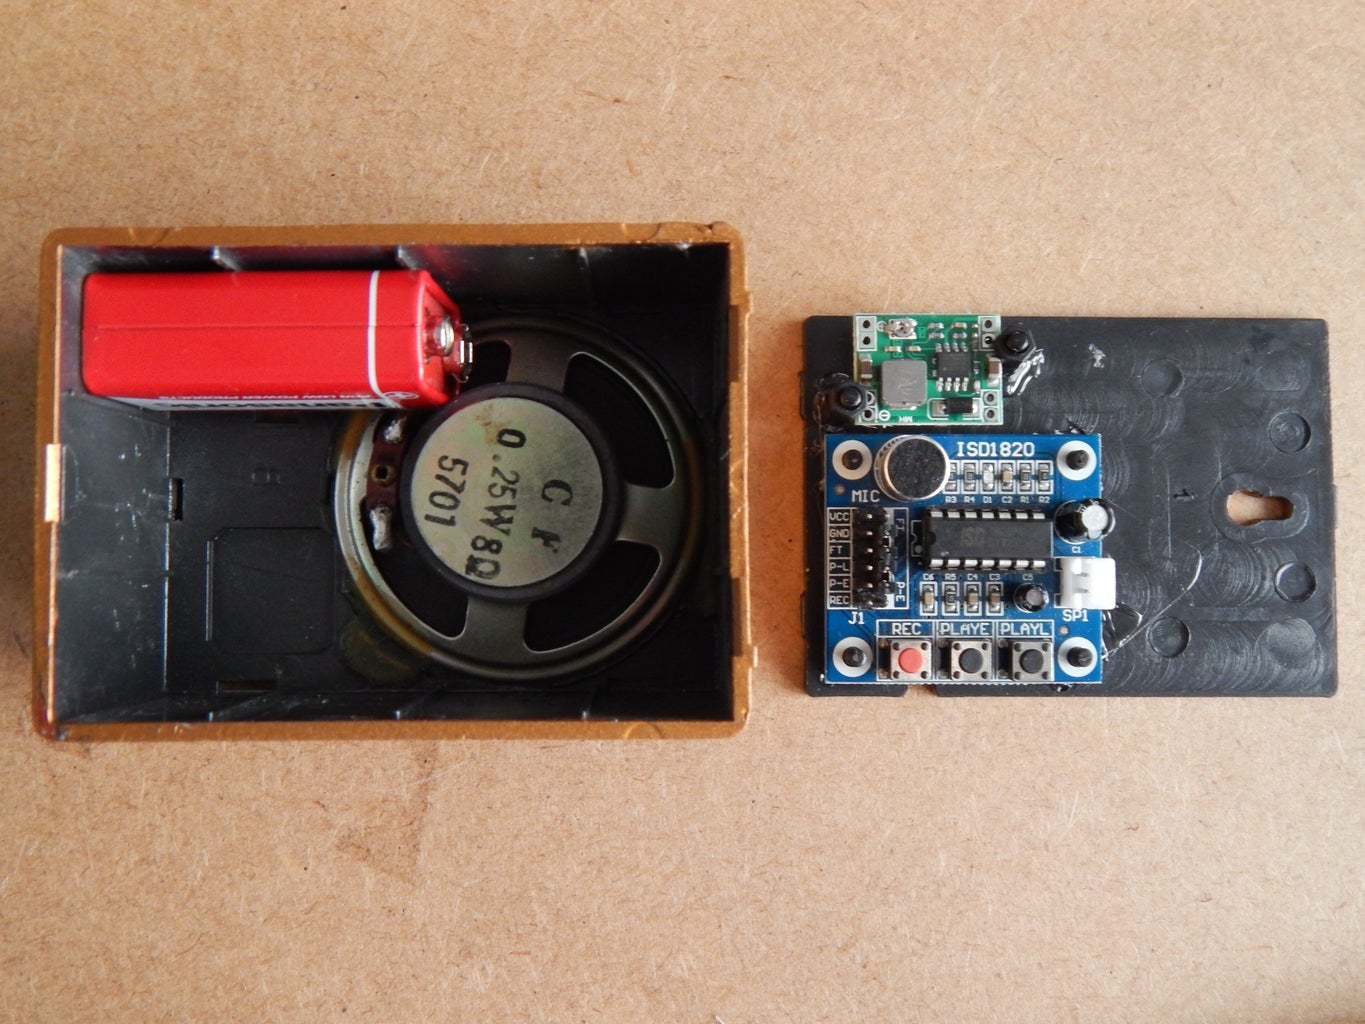 Placing Components Inside the Box